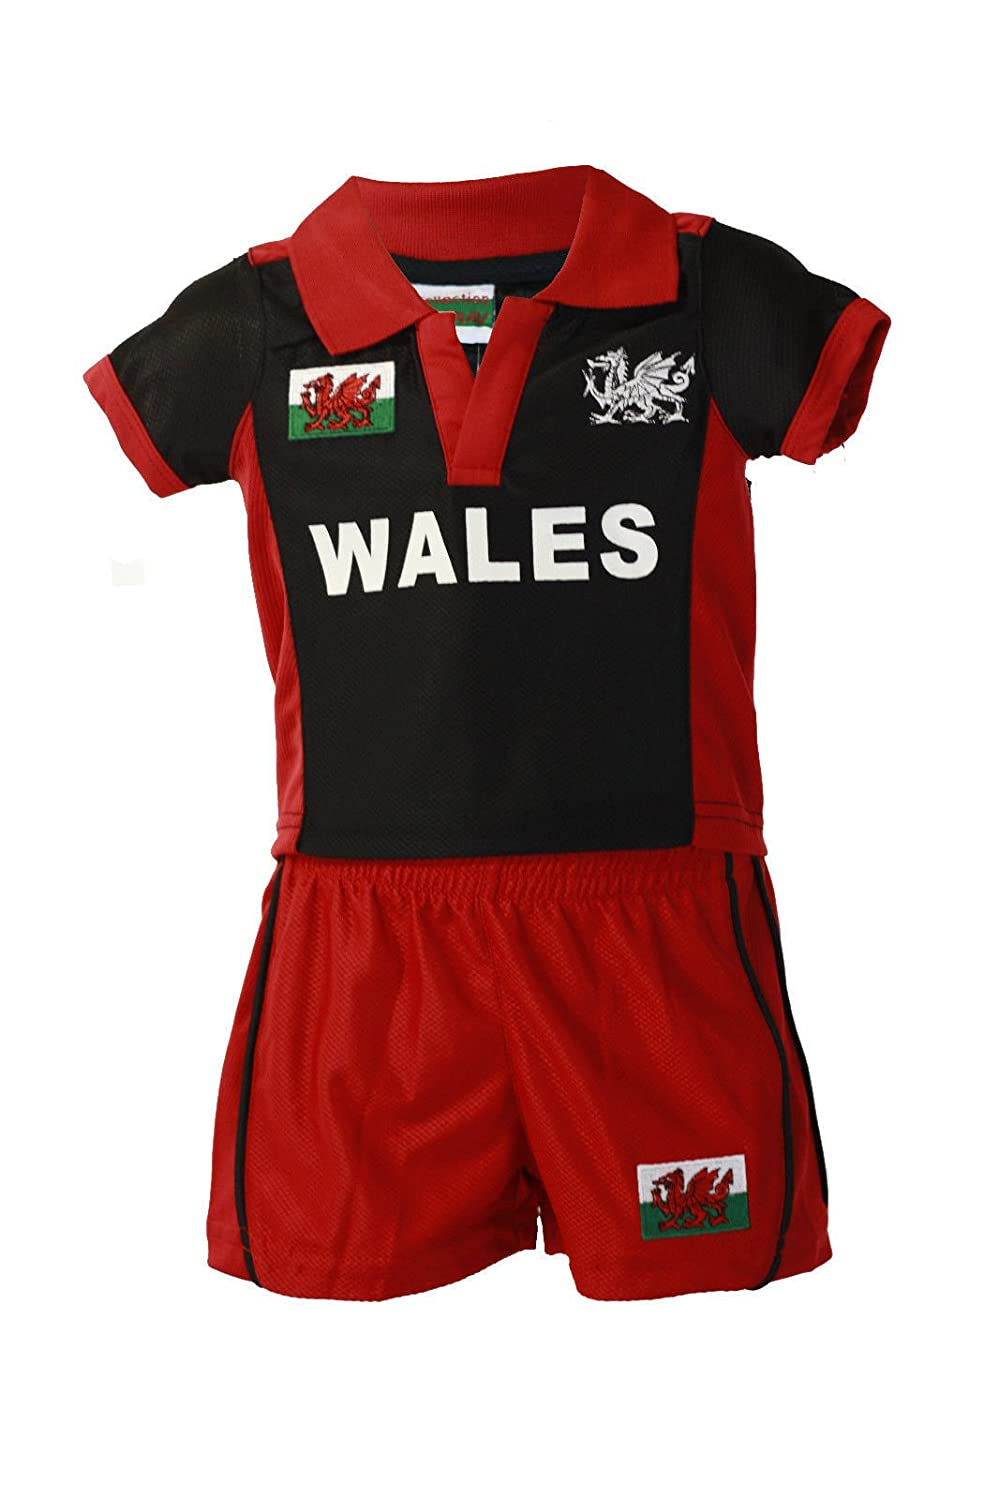 FASHION REVIEW MANAV'S BABY WELSH CYMRU RUGBY KIT (Top+Shorts) BLACK & RED YEARS 1-5